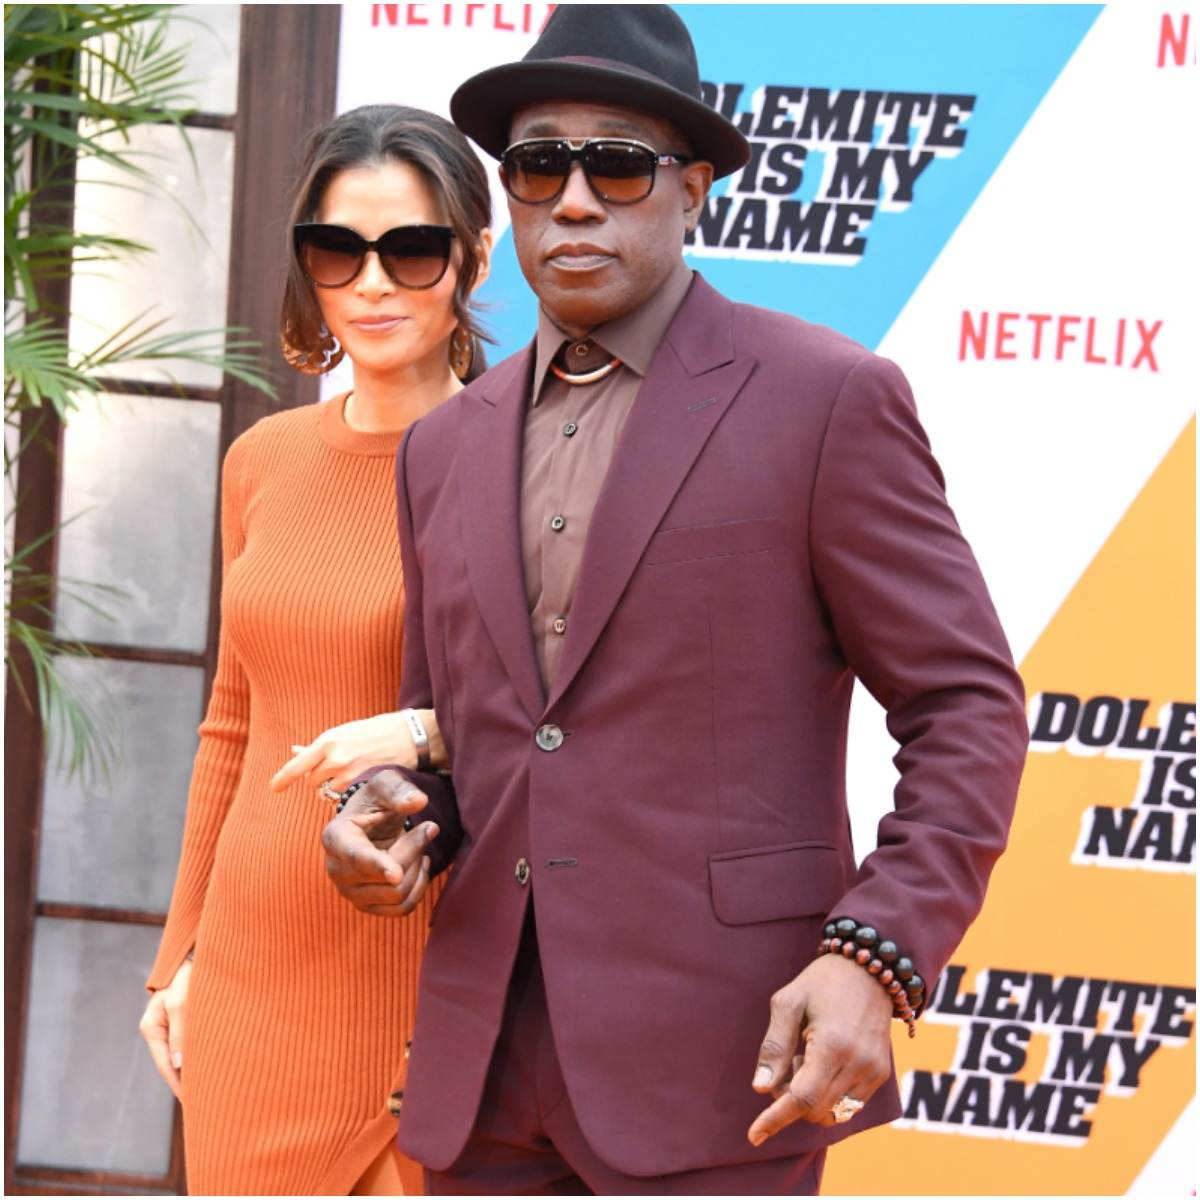 Wesley Snipes and his wife Nakyung Park